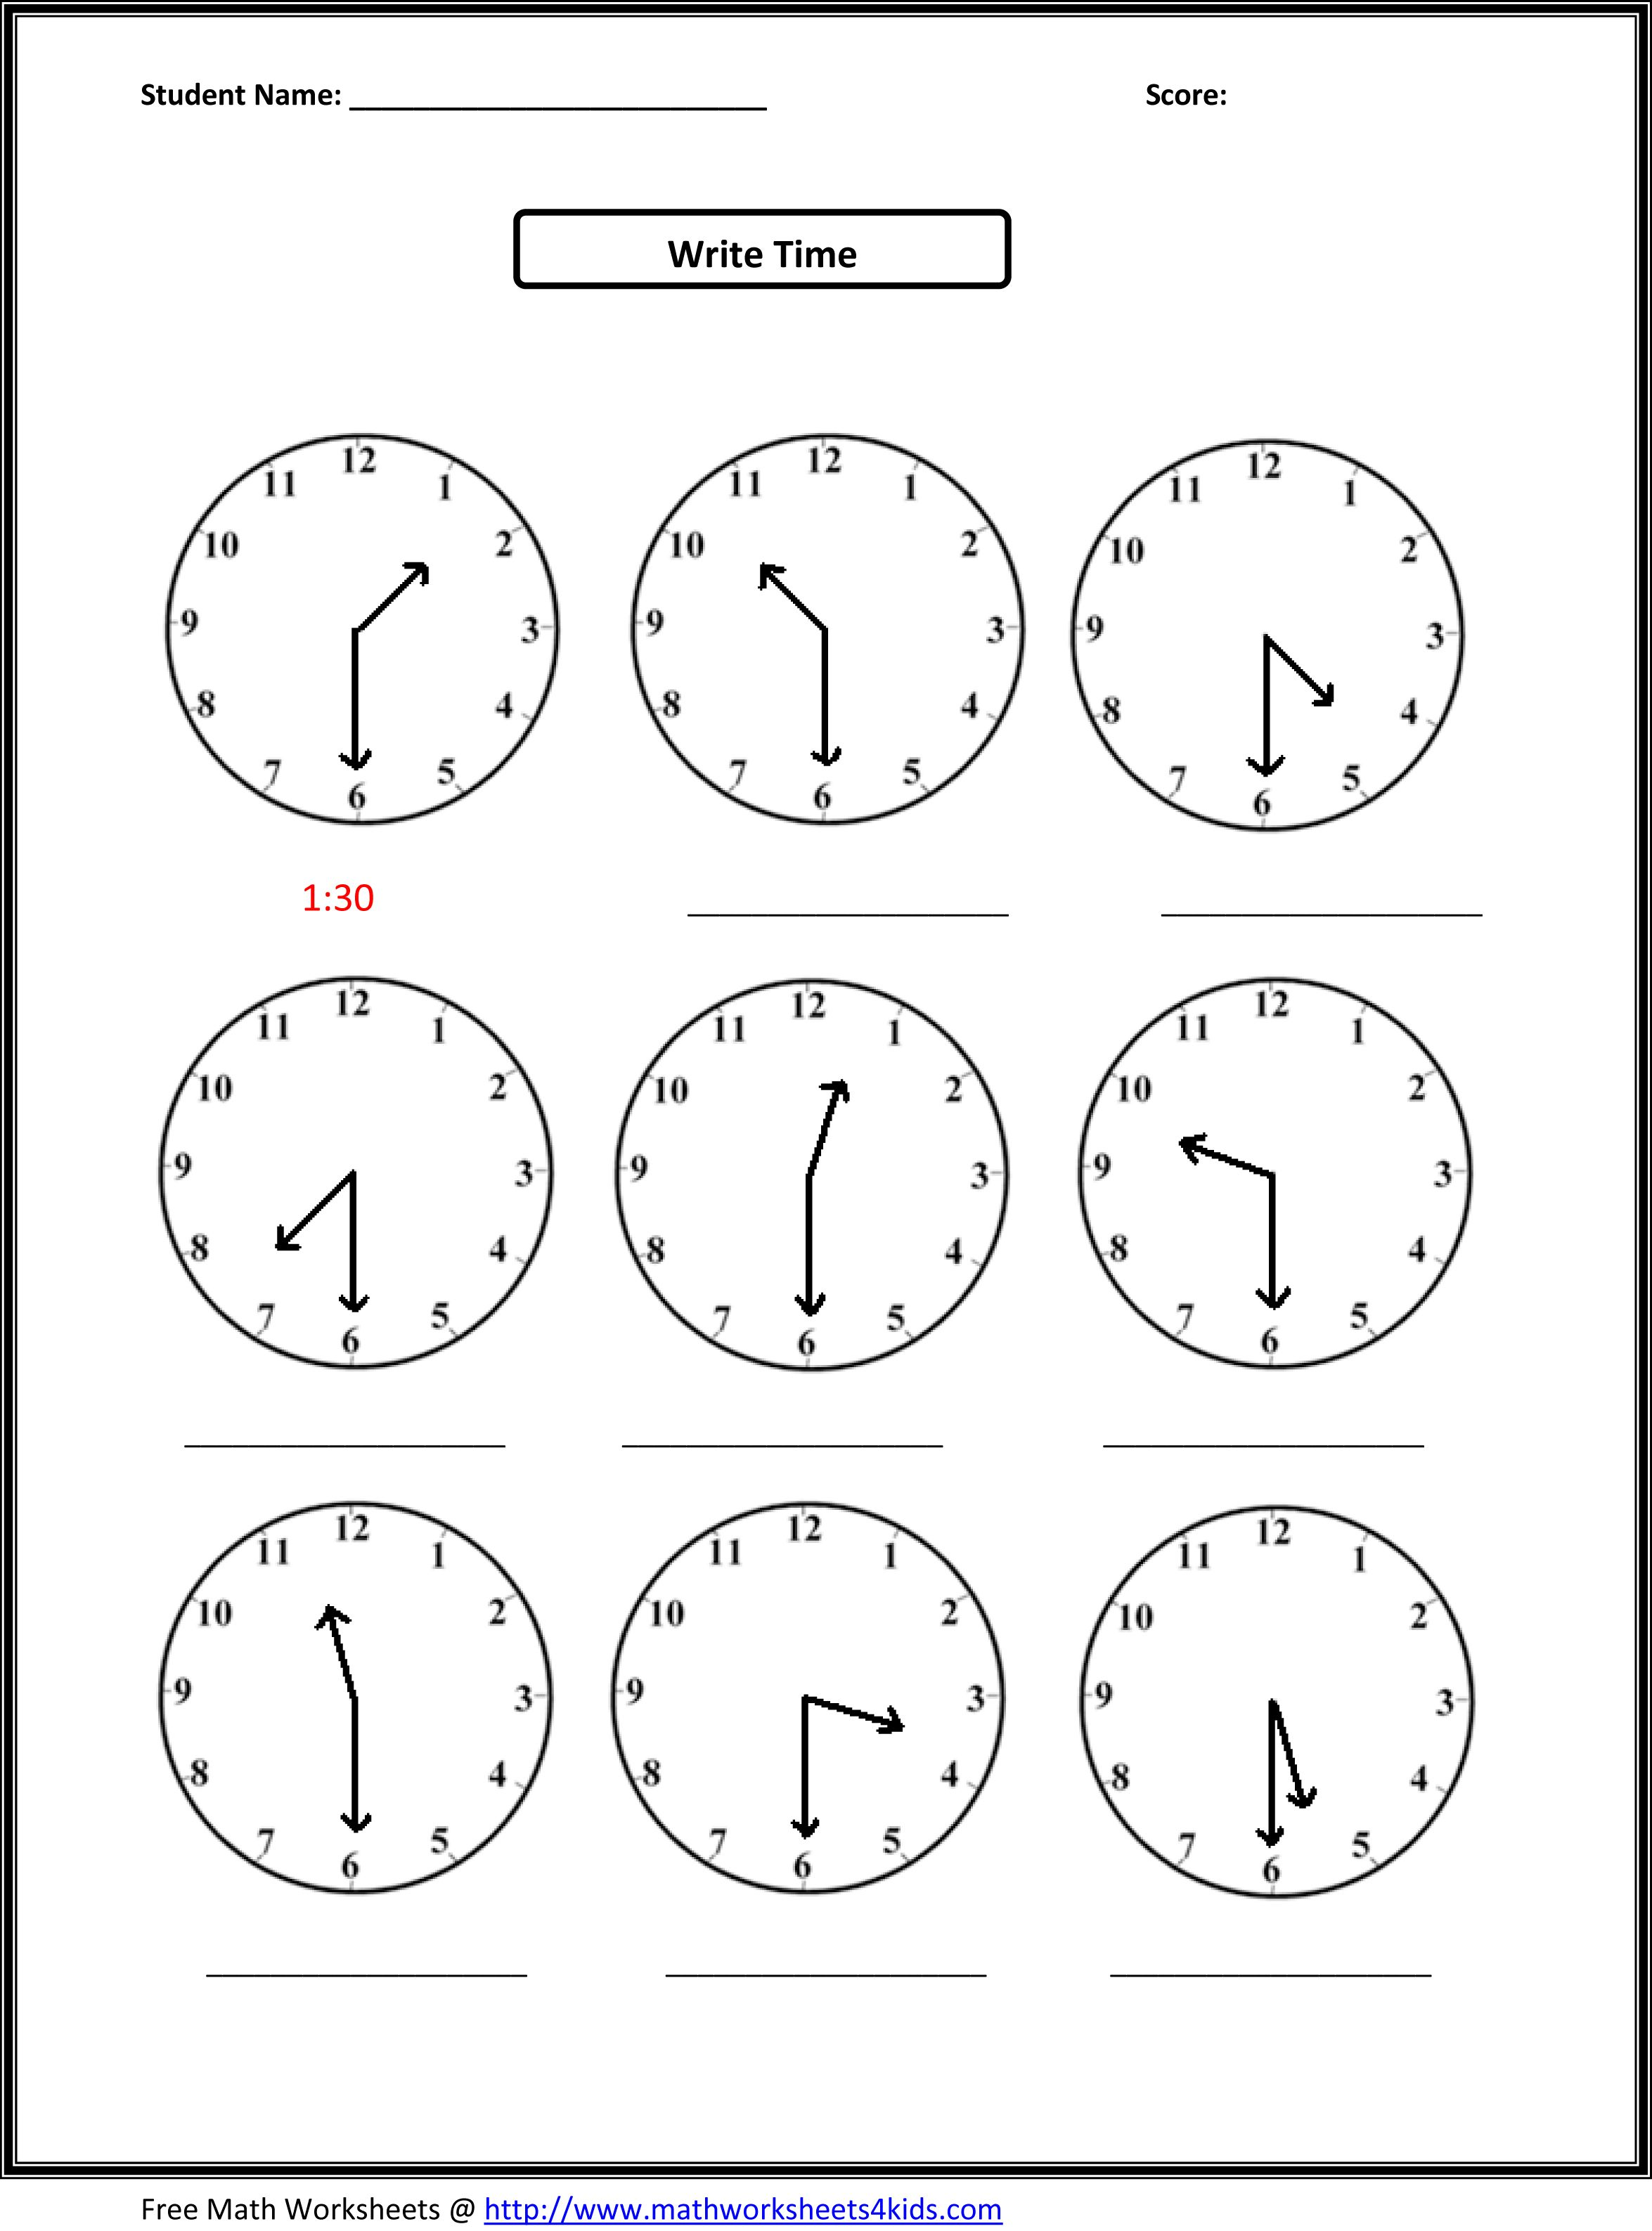 Proatmealus  Remarkable Worksheet On Time For Grade   Reocurent With Magnificent Free Printable Telling Time Worksheets Nd Grade  Reocurent With Breathtaking Nine Times Table Worksheet Also Adding Positive And Negative Integers Worksheets In Addition Rules Of Exponents Worksheets And Vowel Practice Worksheets As Well As Free Personification Worksheets Additionally Free Printable Personal Hygiene Worksheets From Reocurentcom With Proatmealus  Magnificent Worksheet On Time For Grade   Reocurent With Breathtaking Free Printable Telling Time Worksheets Nd Grade  Reocurent And Remarkable Nine Times Table Worksheet Also Adding Positive And Negative Integers Worksheets In Addition Rules Of Exponents Worksheets From Reocurentcom